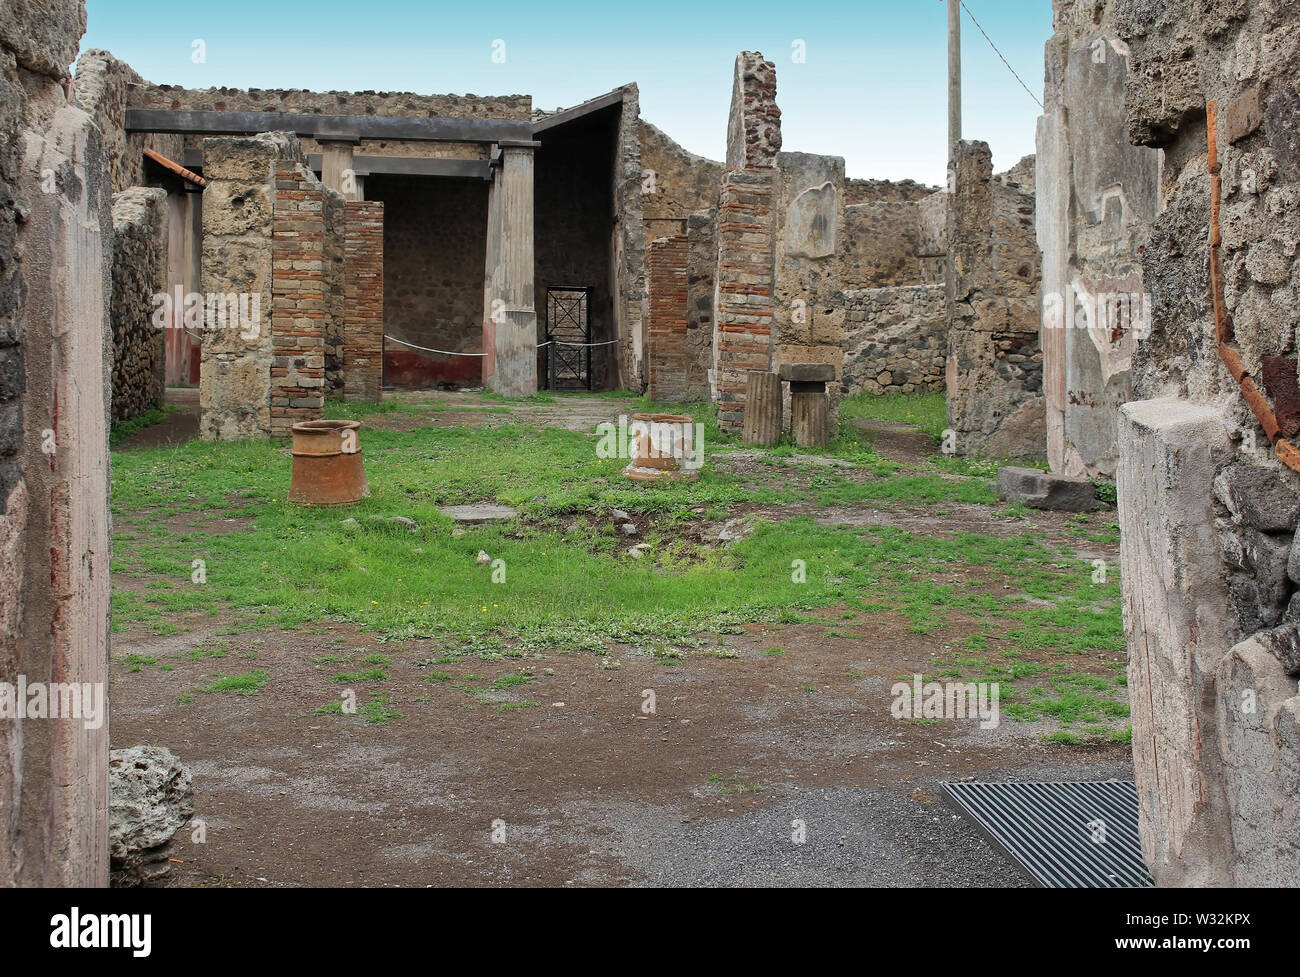 Ancient old ruins with damaged aged stone walls - Stock Image